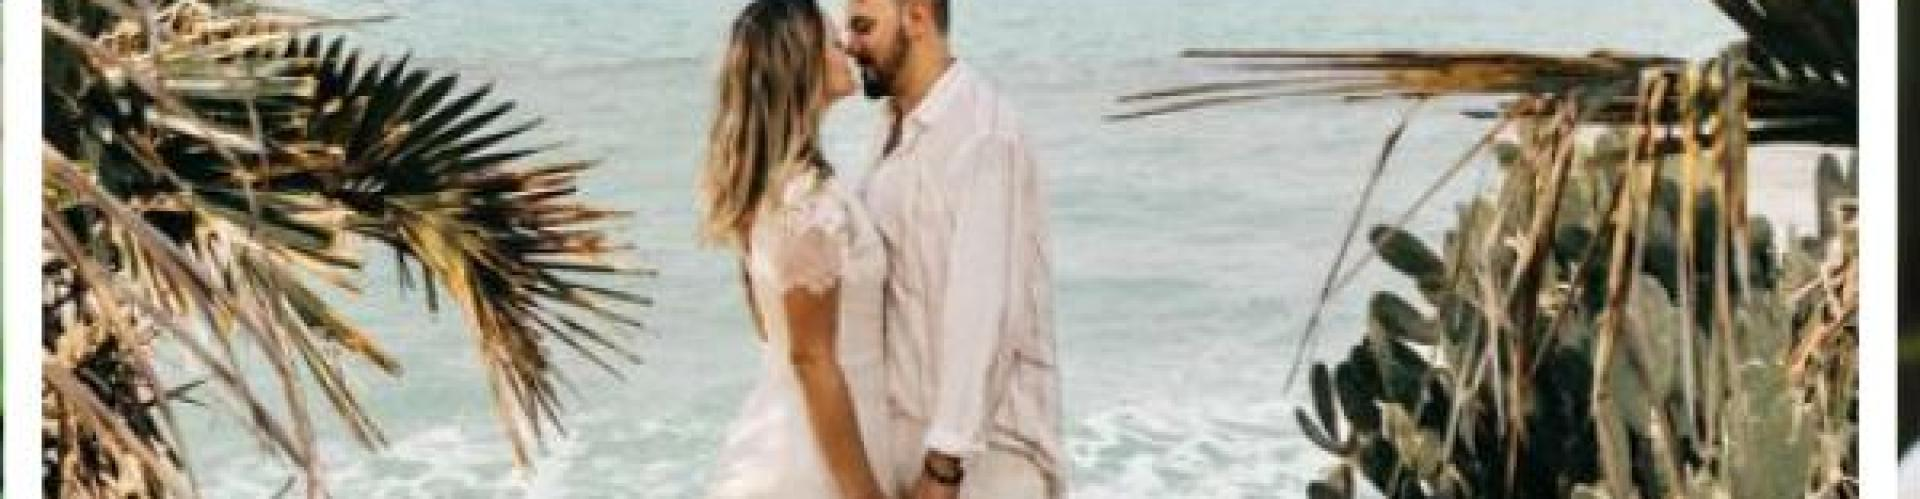 Coutumes et traditions d'un mariage au Costa Rica